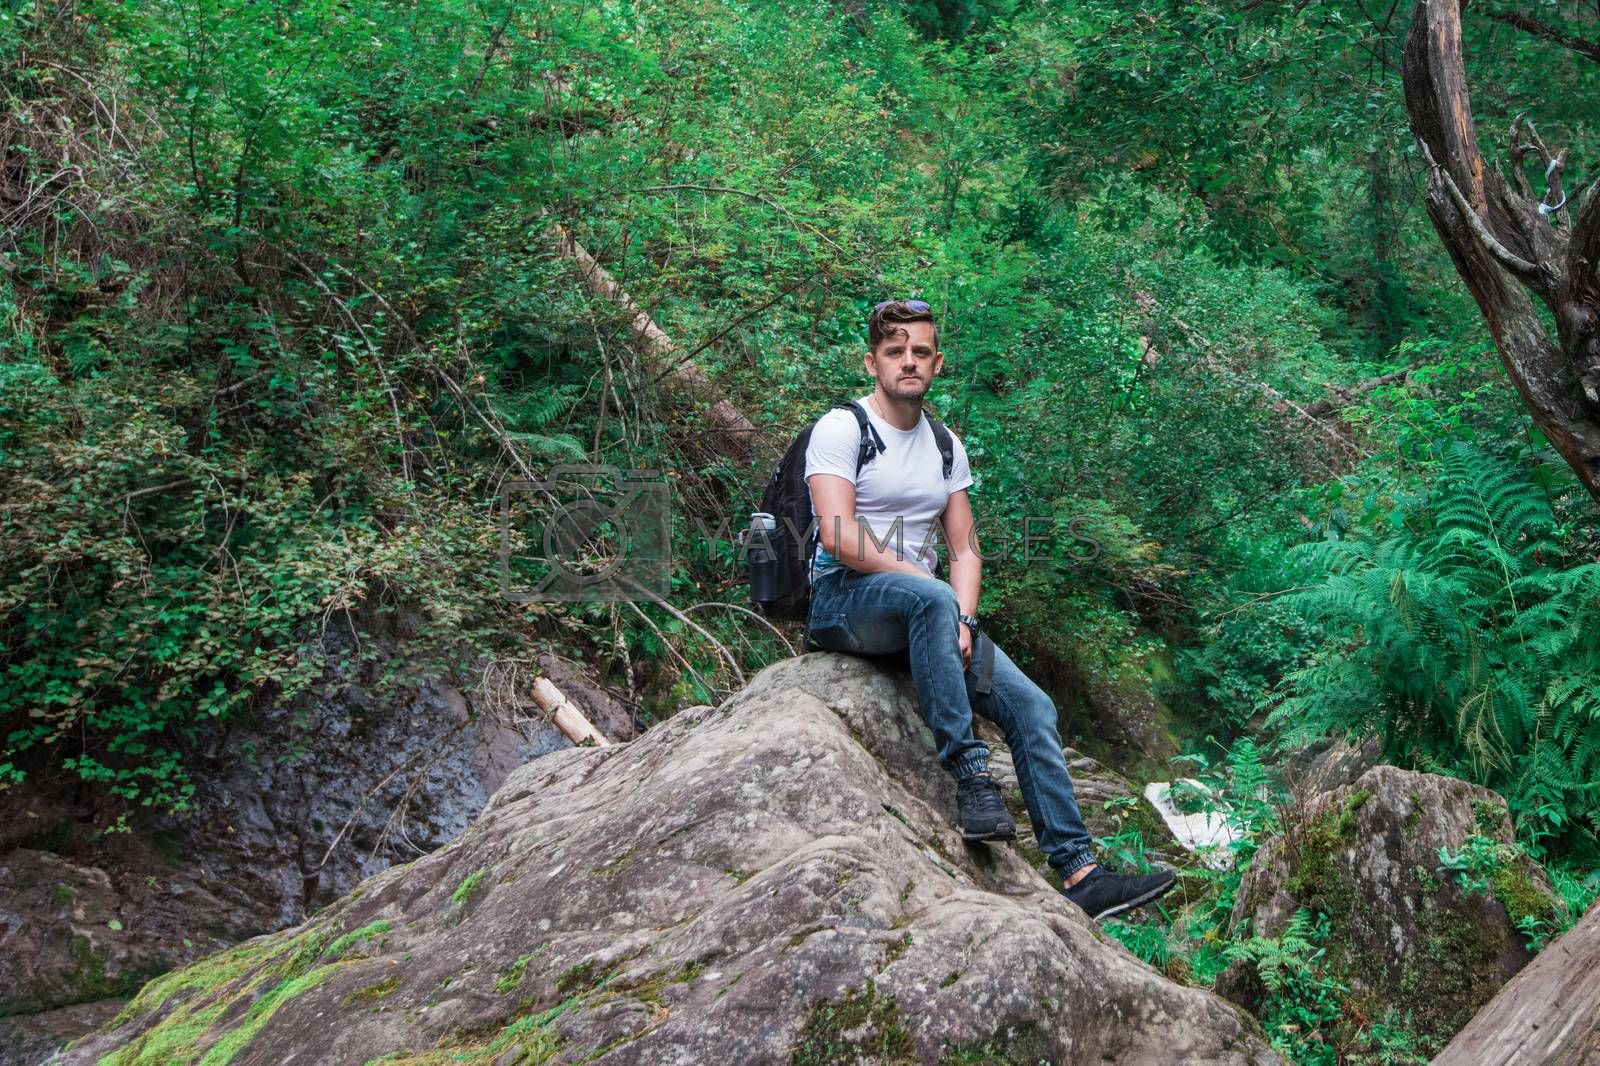 Man traveler with backpack sitting on rock in the forest. Travel lifestyle or adventure vacations concept